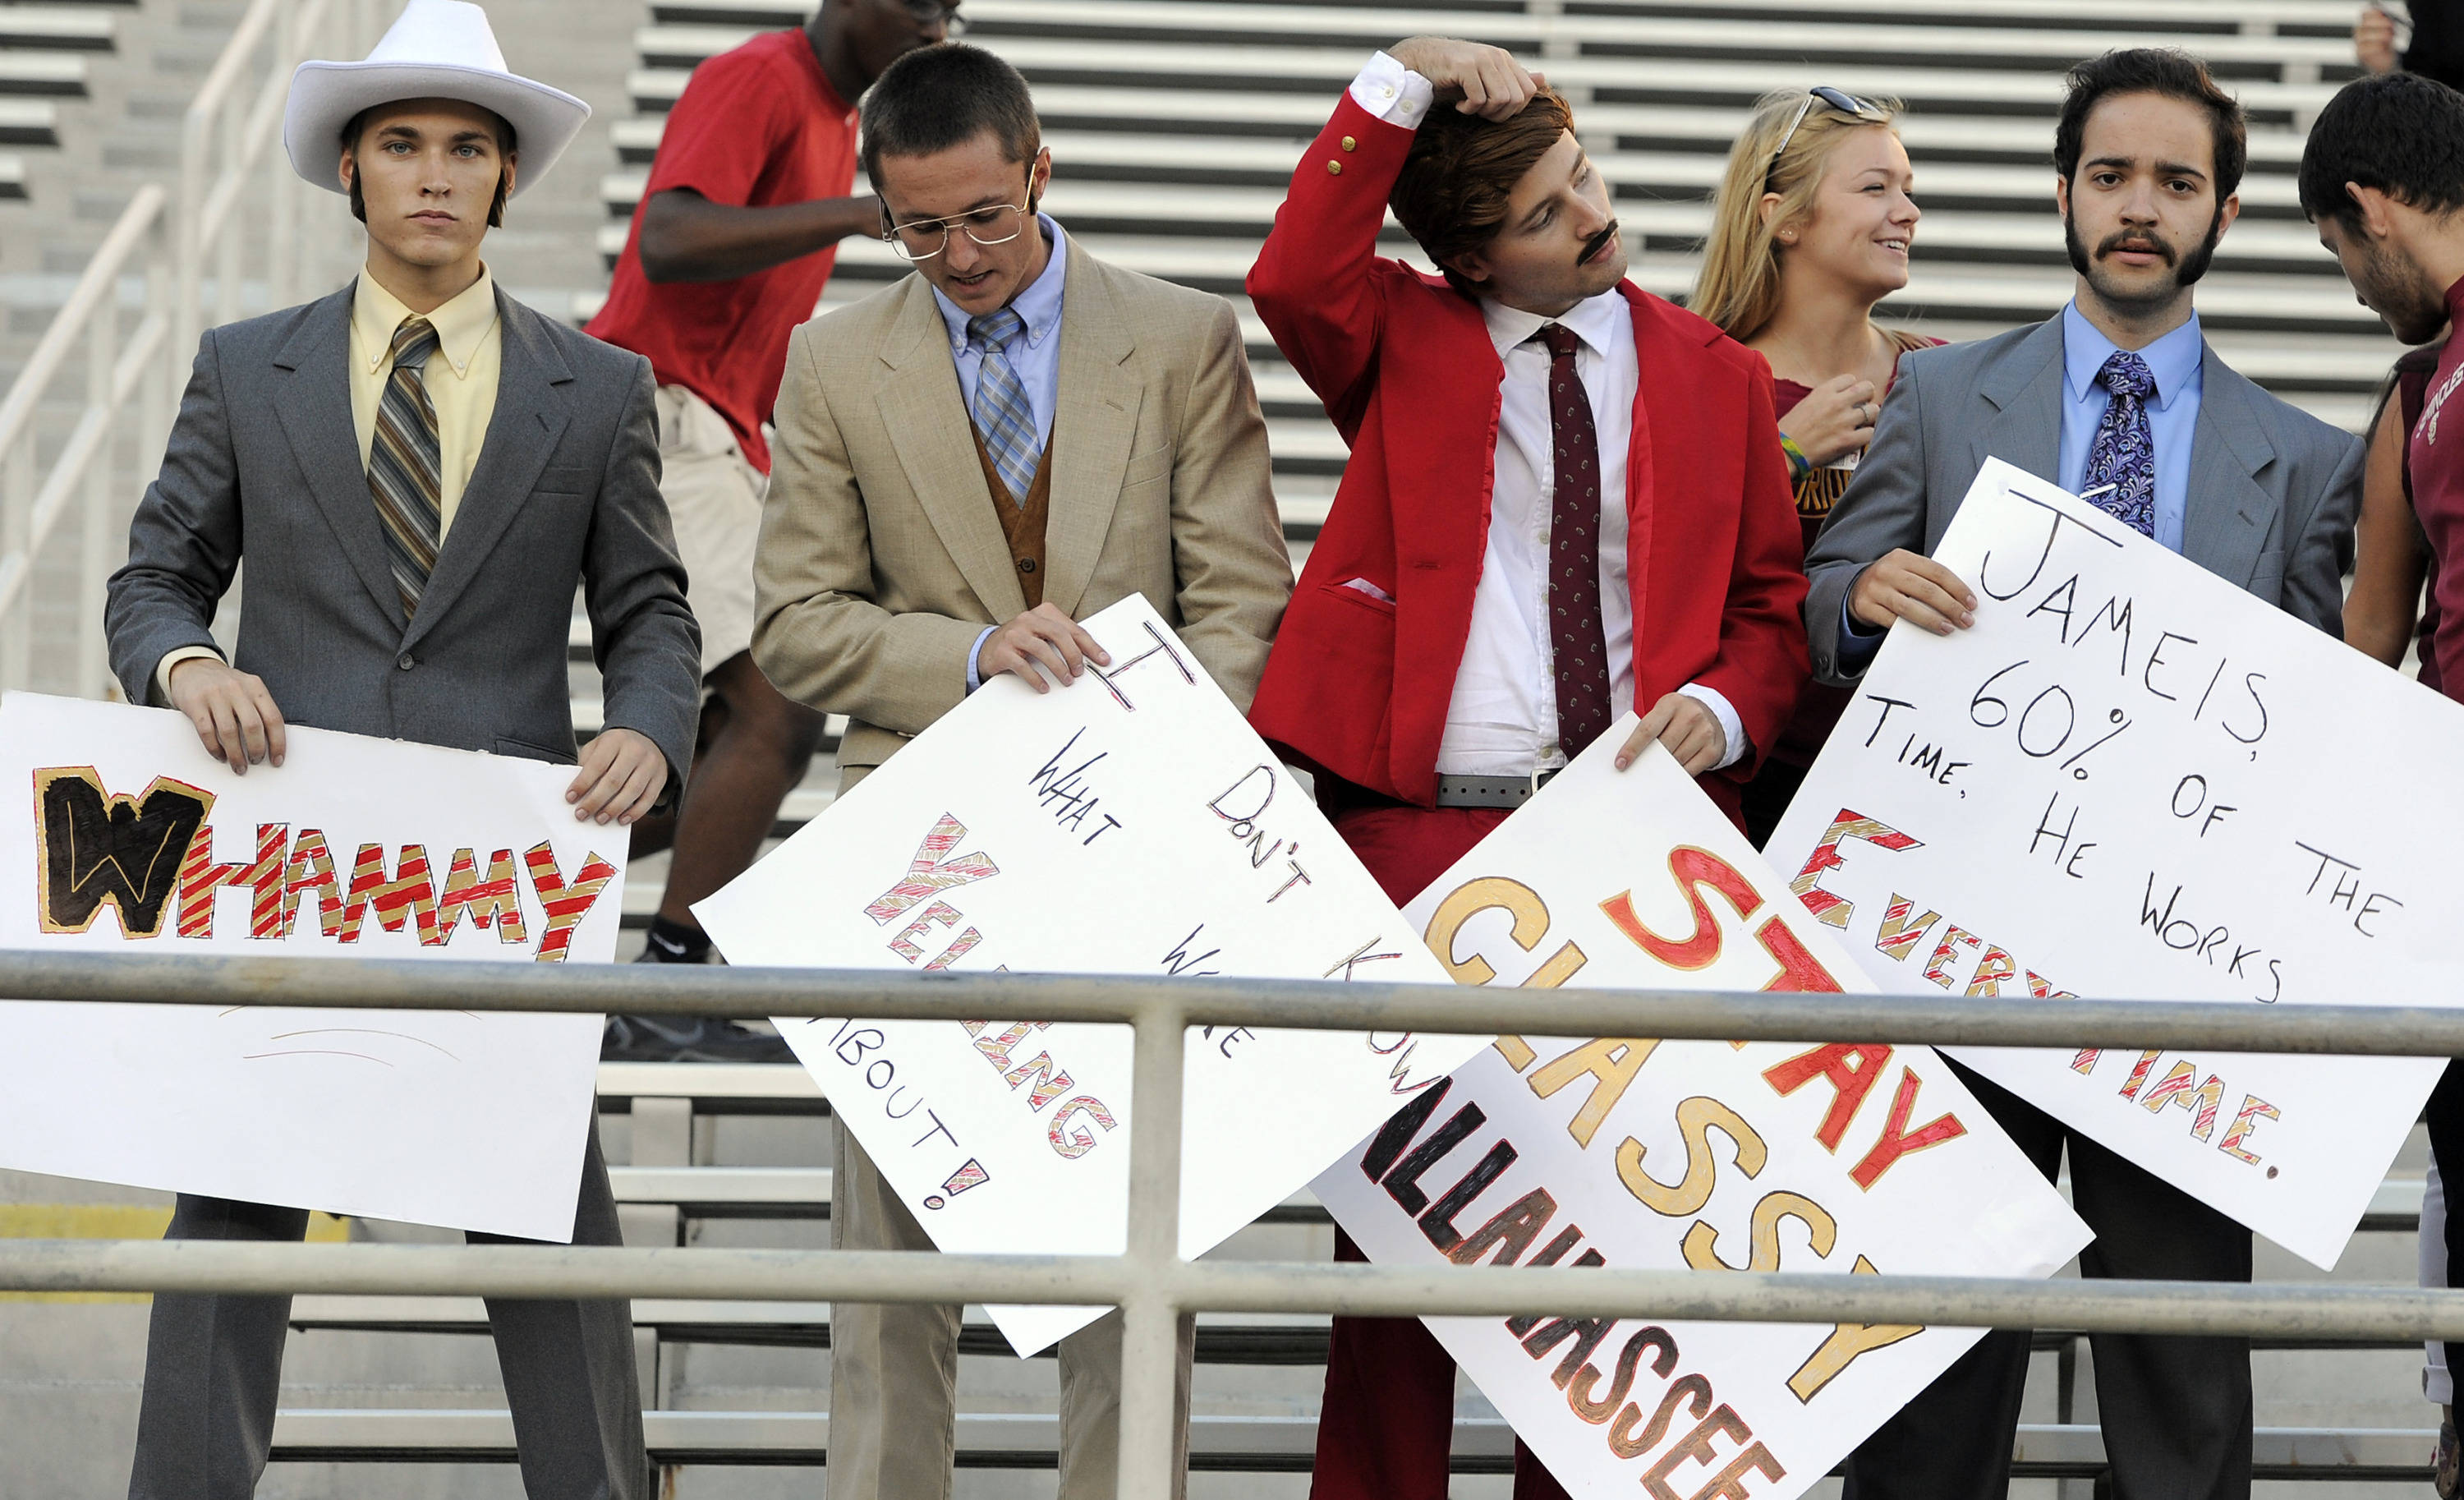 Florida State Seminoles fans dressed up as the Channel 4 news team from the movie Anchorman get set up before the game against the Miami Hurricanes at Doak Campbell Stadium. Mandatory Credit: John David Mercer-USA TODAY Sports